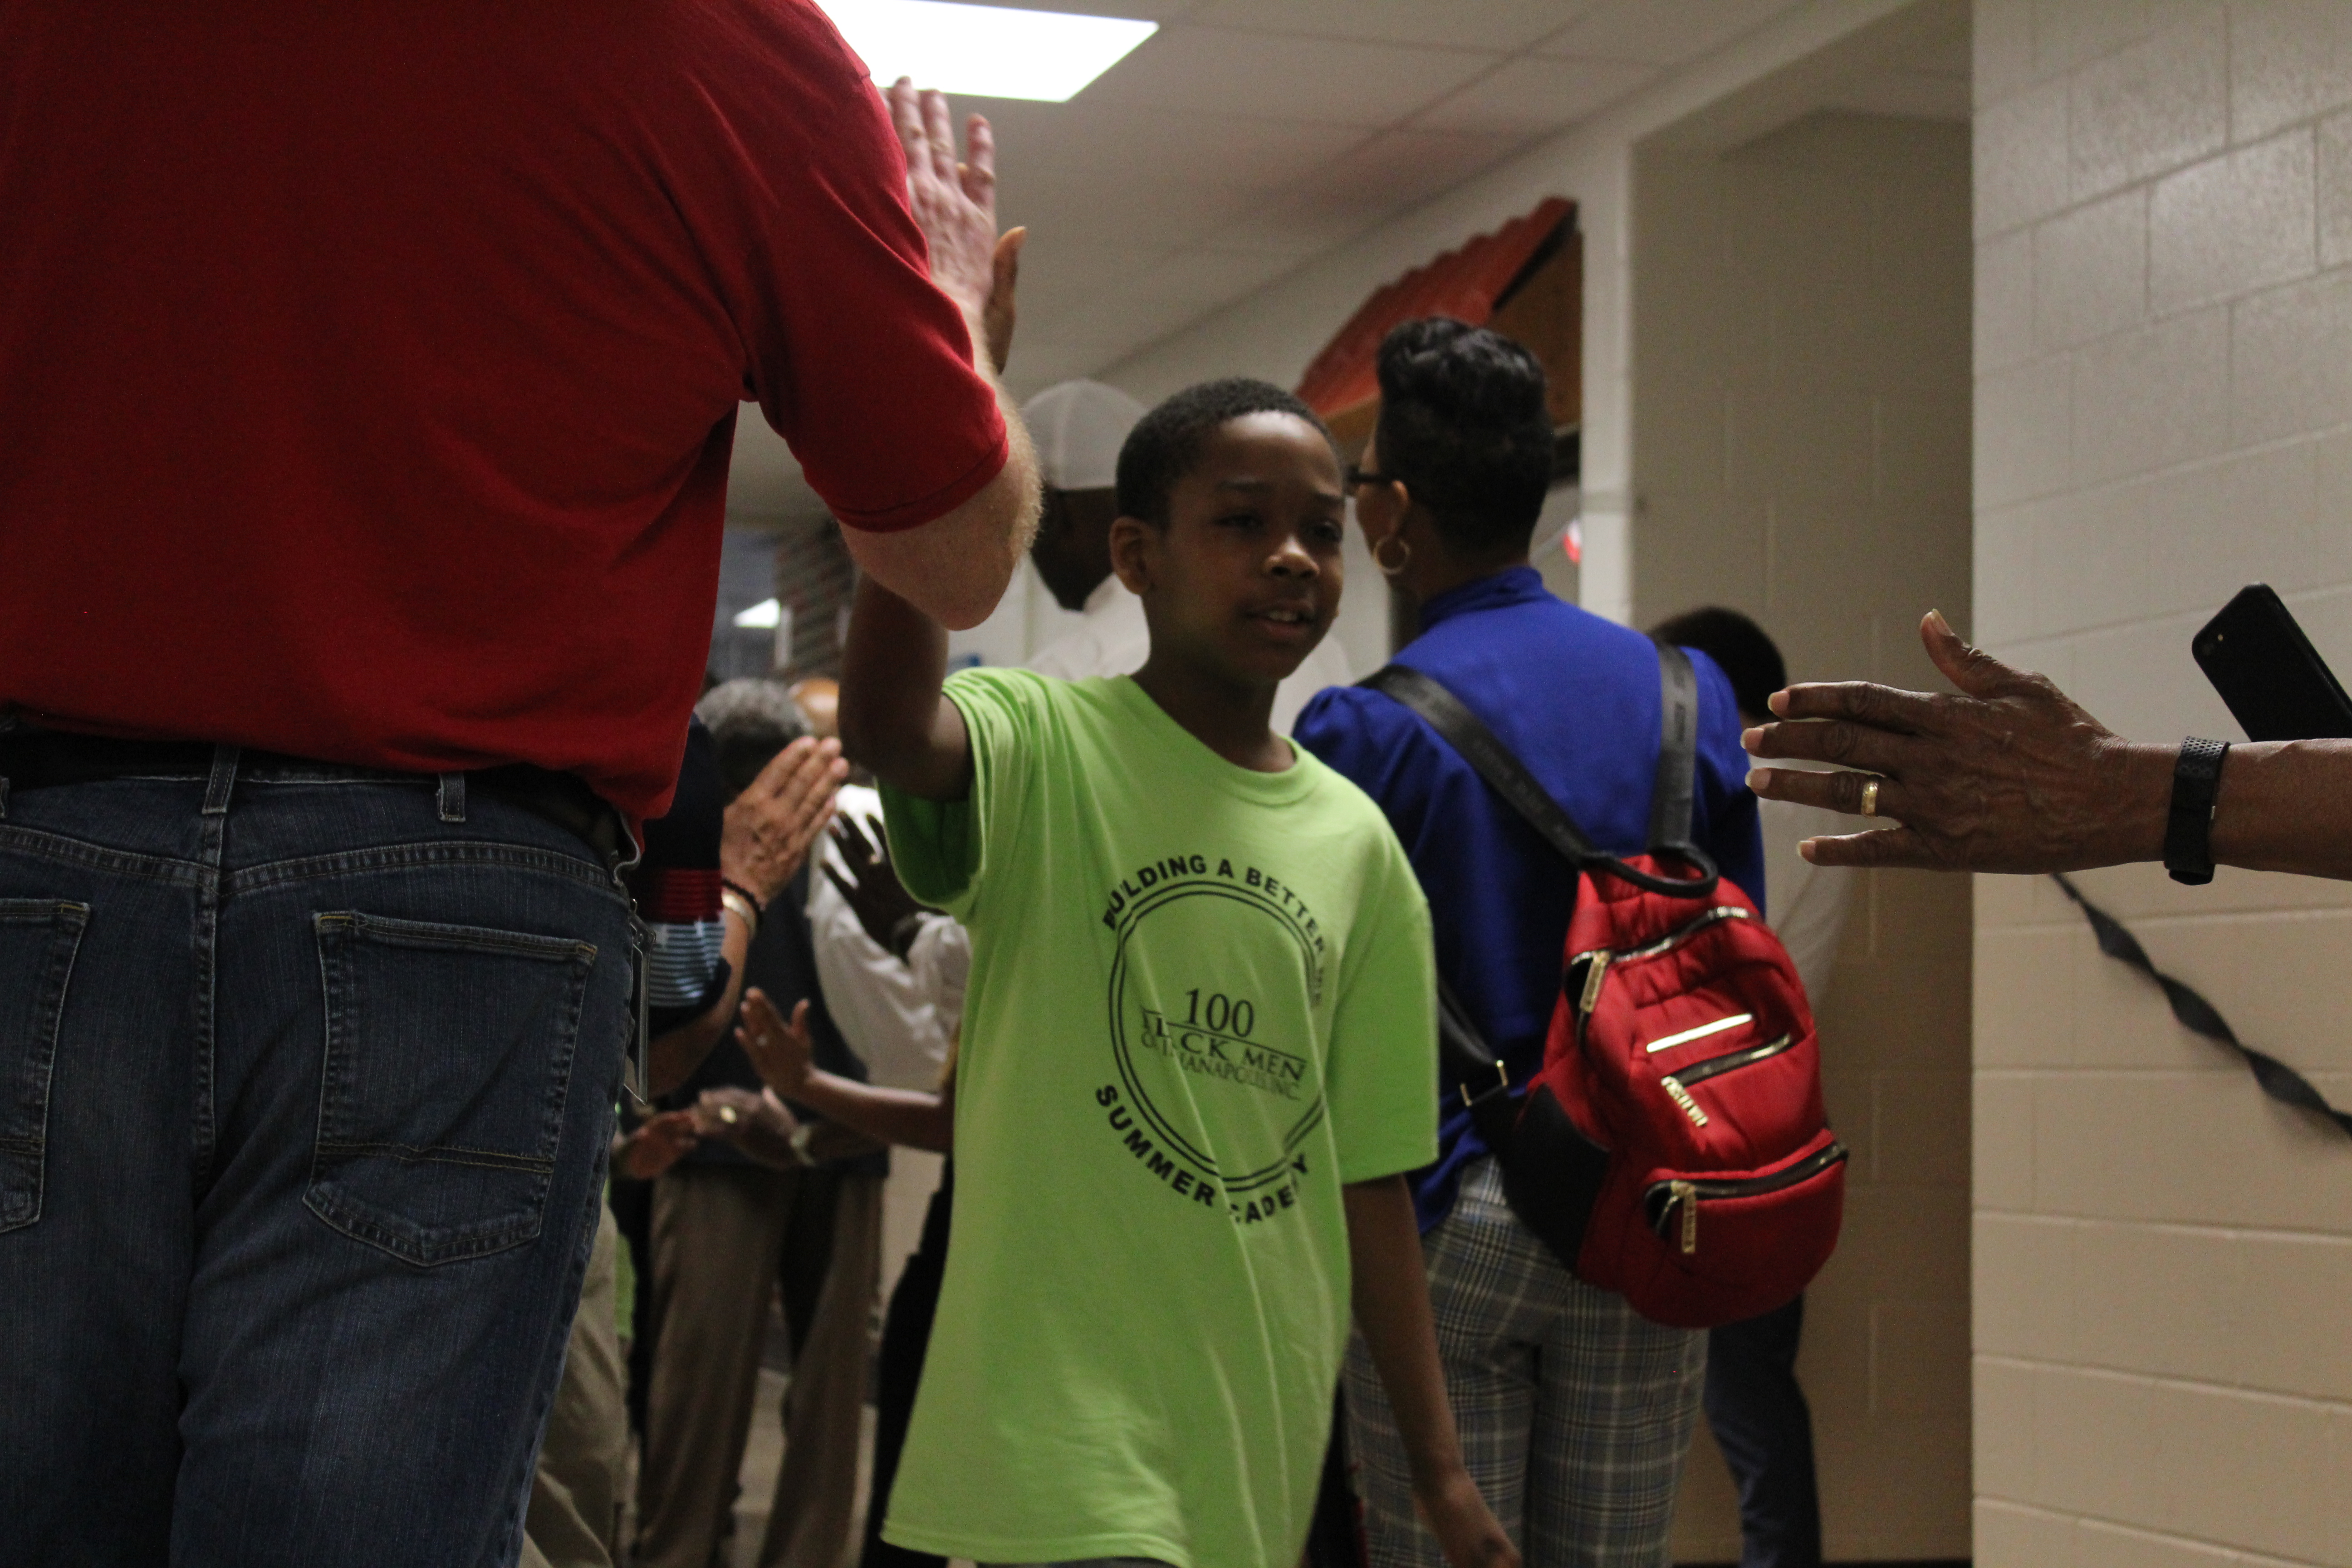 Community members and organizers with the 100 Black Men of Indianapolis' Summer Academy welcome a student with a high-five rally.